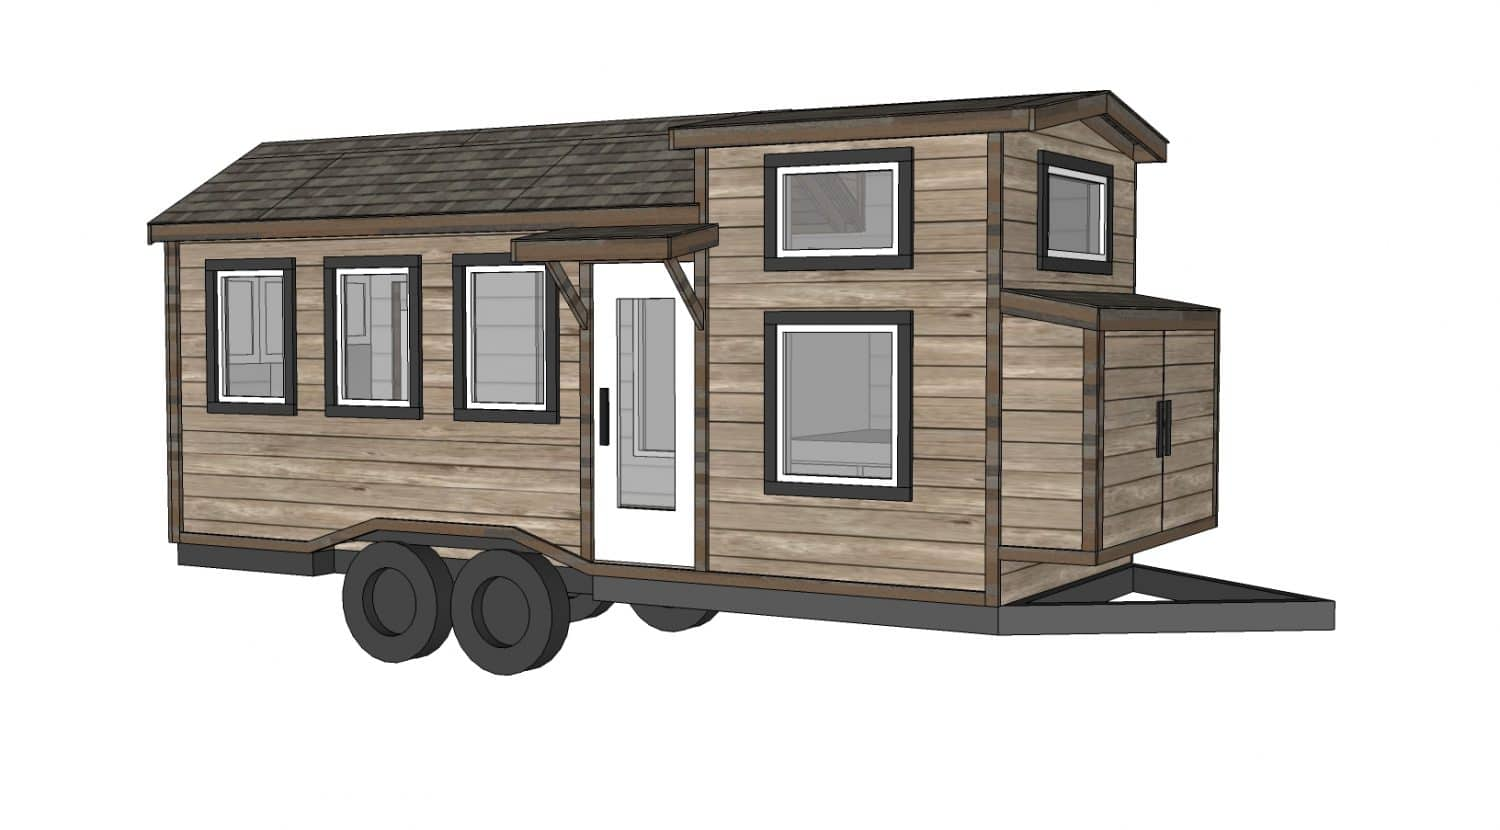 Construire sa propre tiny house plans gratuits et for Tiny house designers